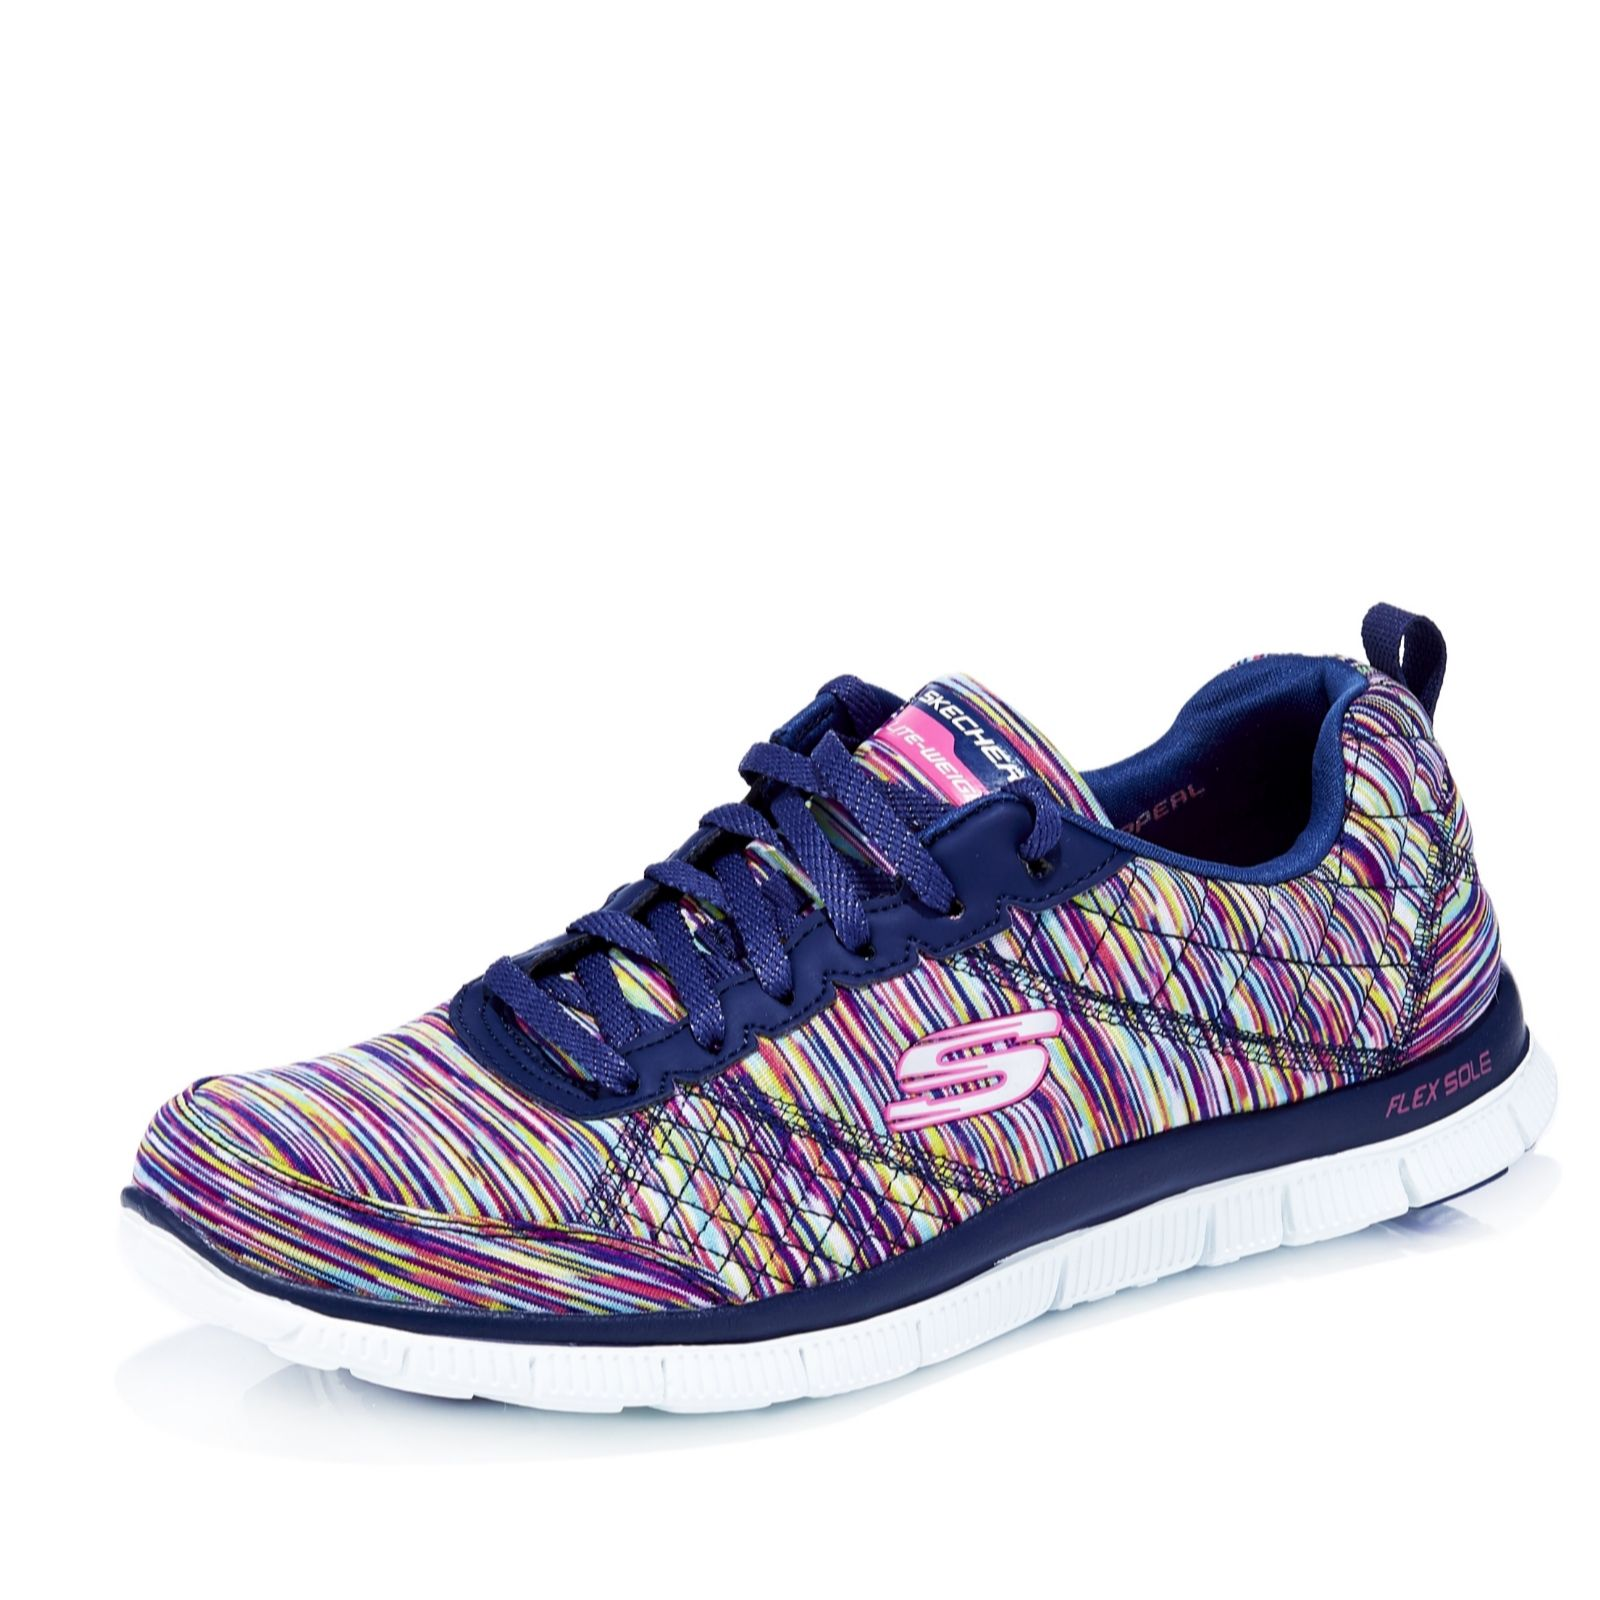 Skechers Flex Appeal Space Dyed Lace Up Trainer with Memory Foam - 157523